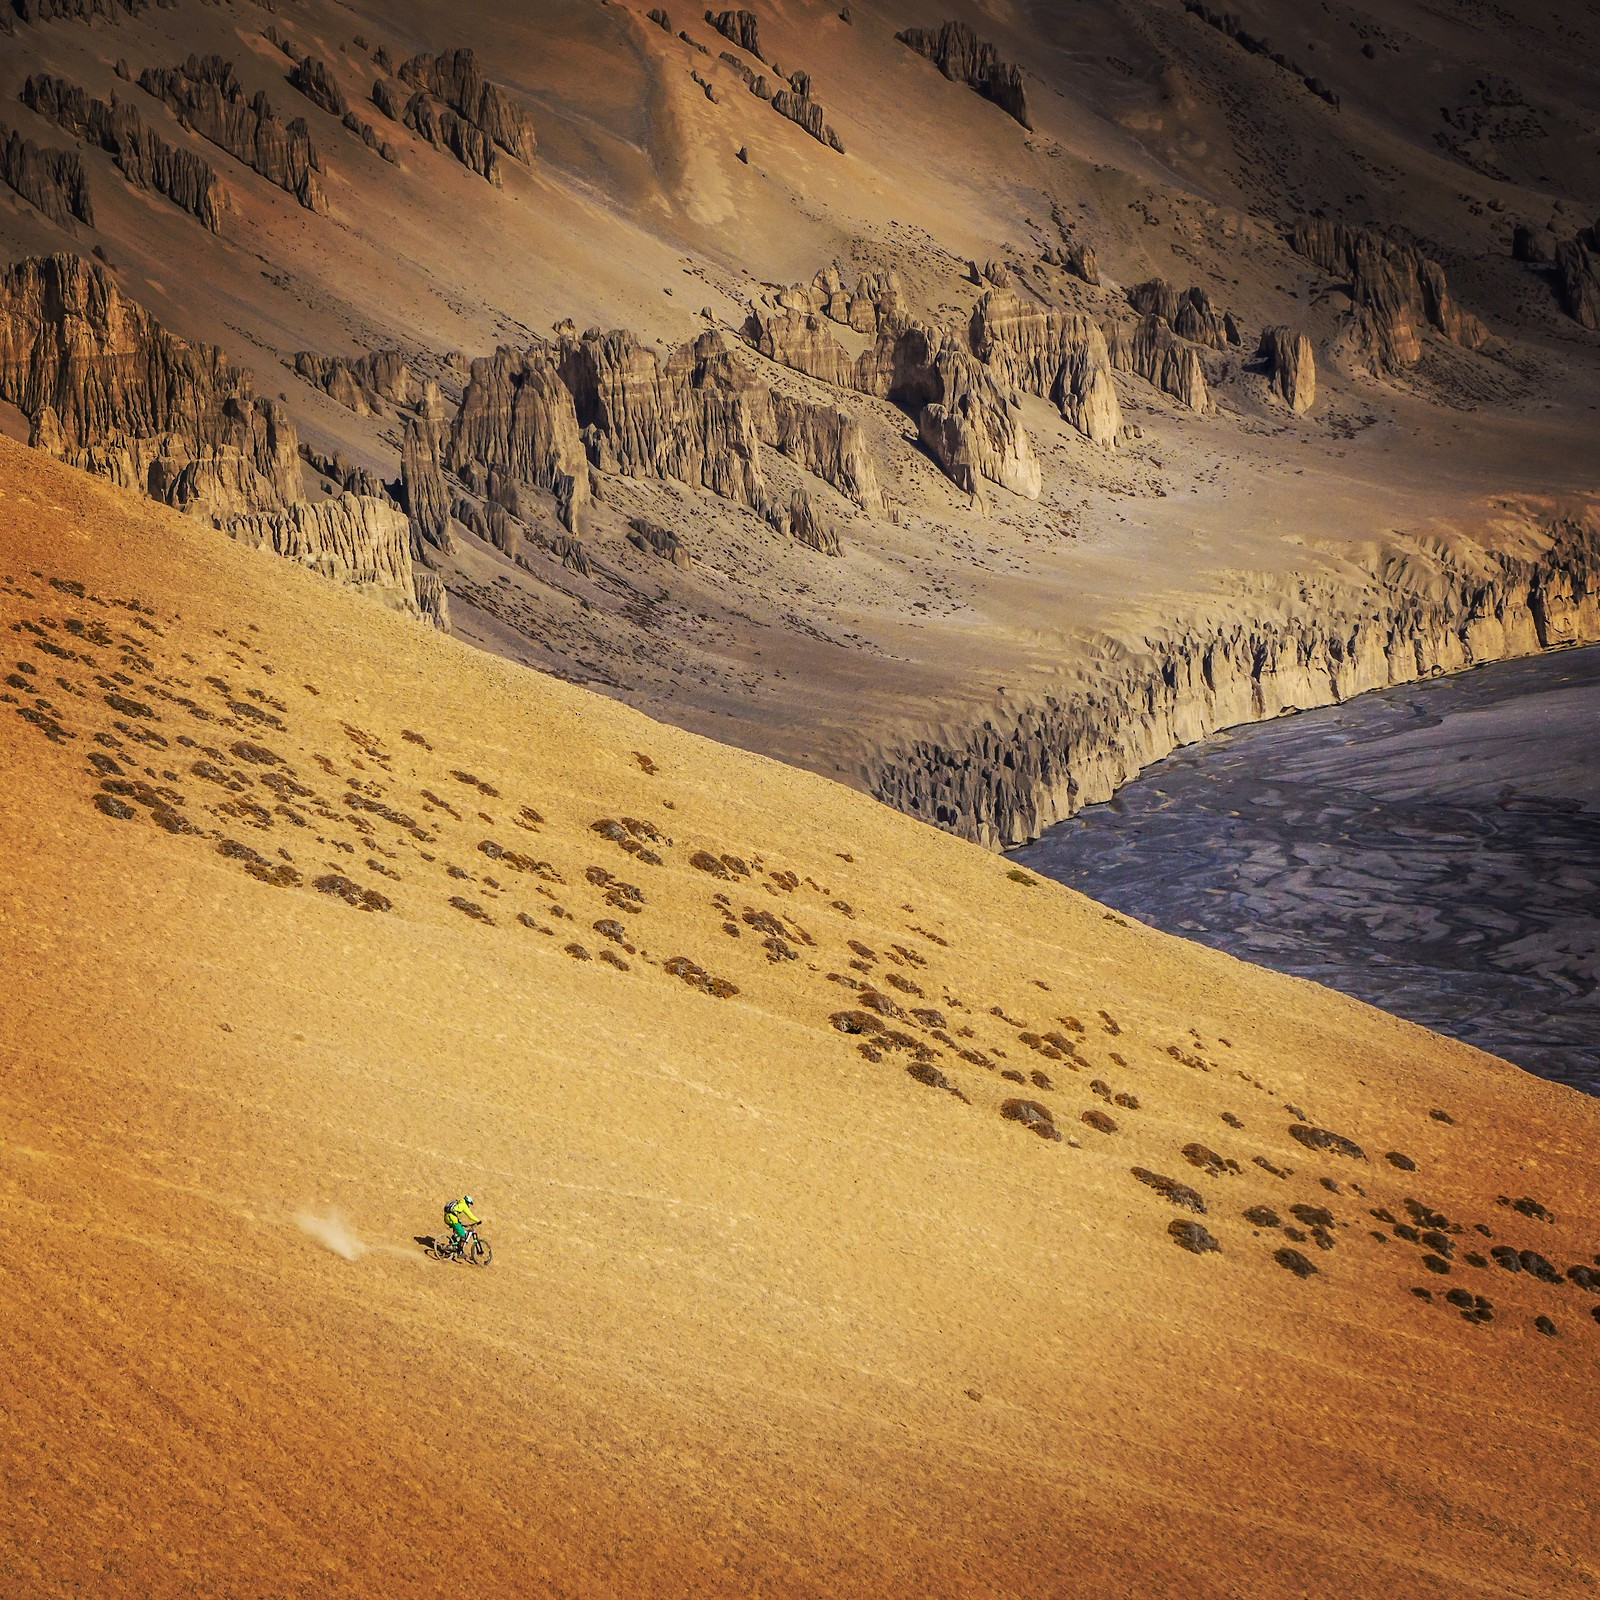 Riding the slopes above the Sumkhar River in Ladakh at over 14,000 ft - Malcolm Mclaws - Mountain Biking Pictures - Vital MTB